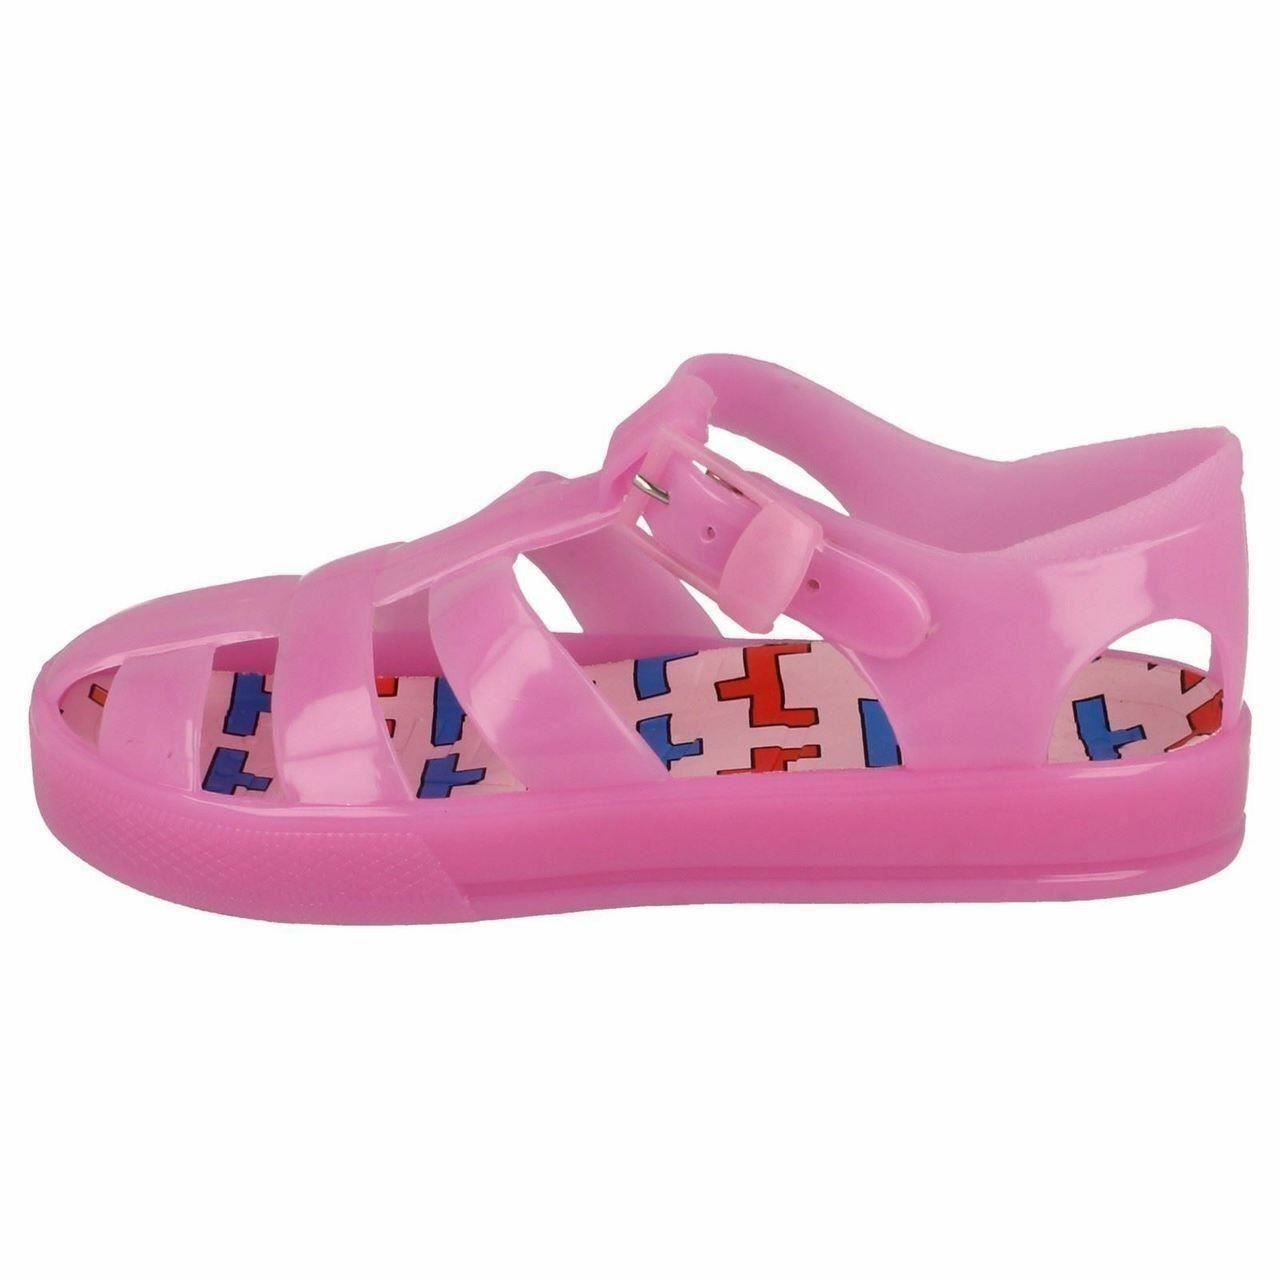 GIRLS SYNTHETIC SPOT ON JELLY SANDALS H0178